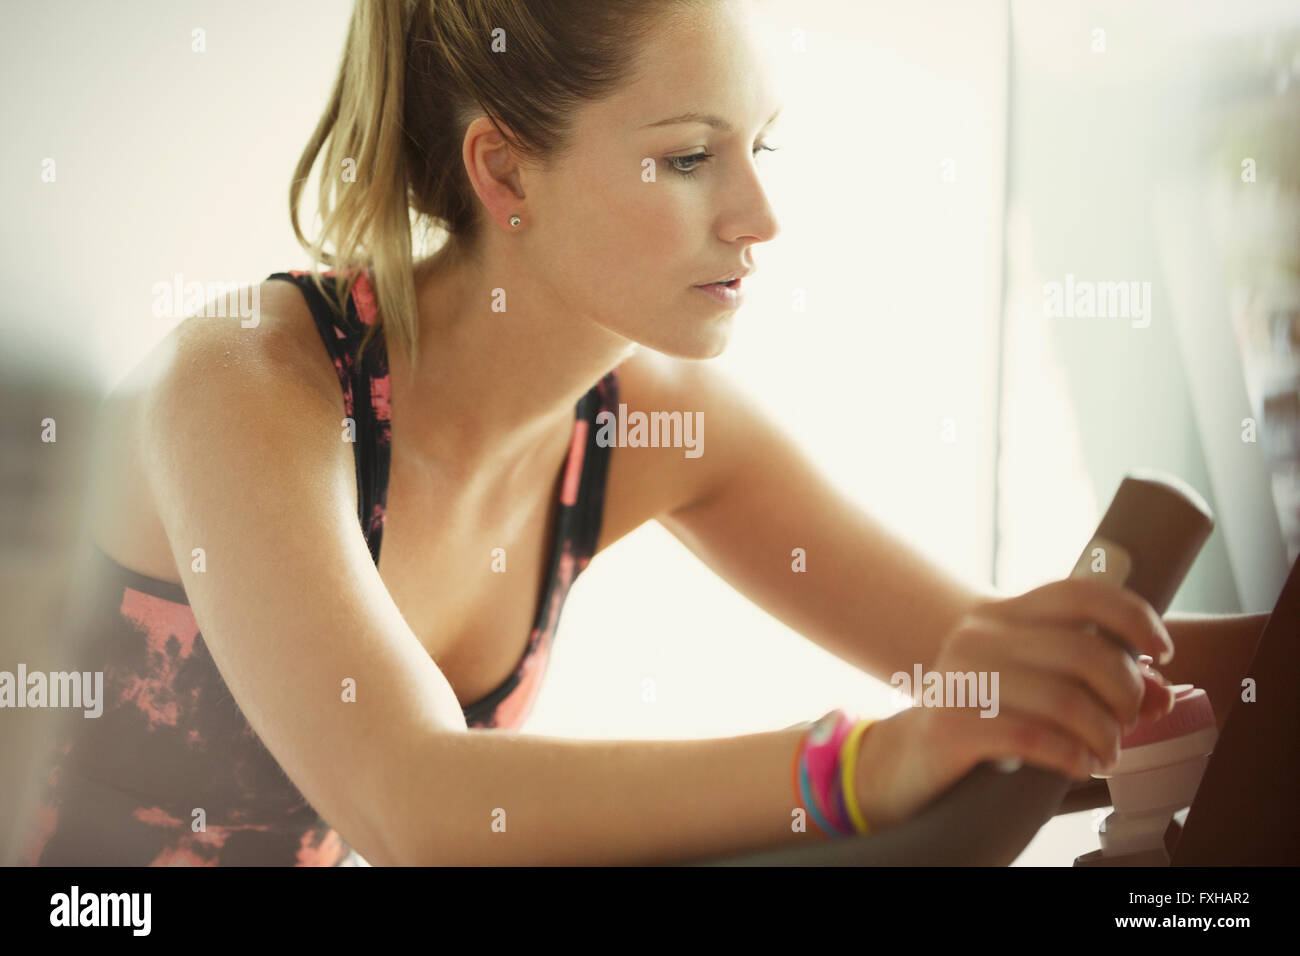 Focused woman using exercise bike at gym - Stock Image